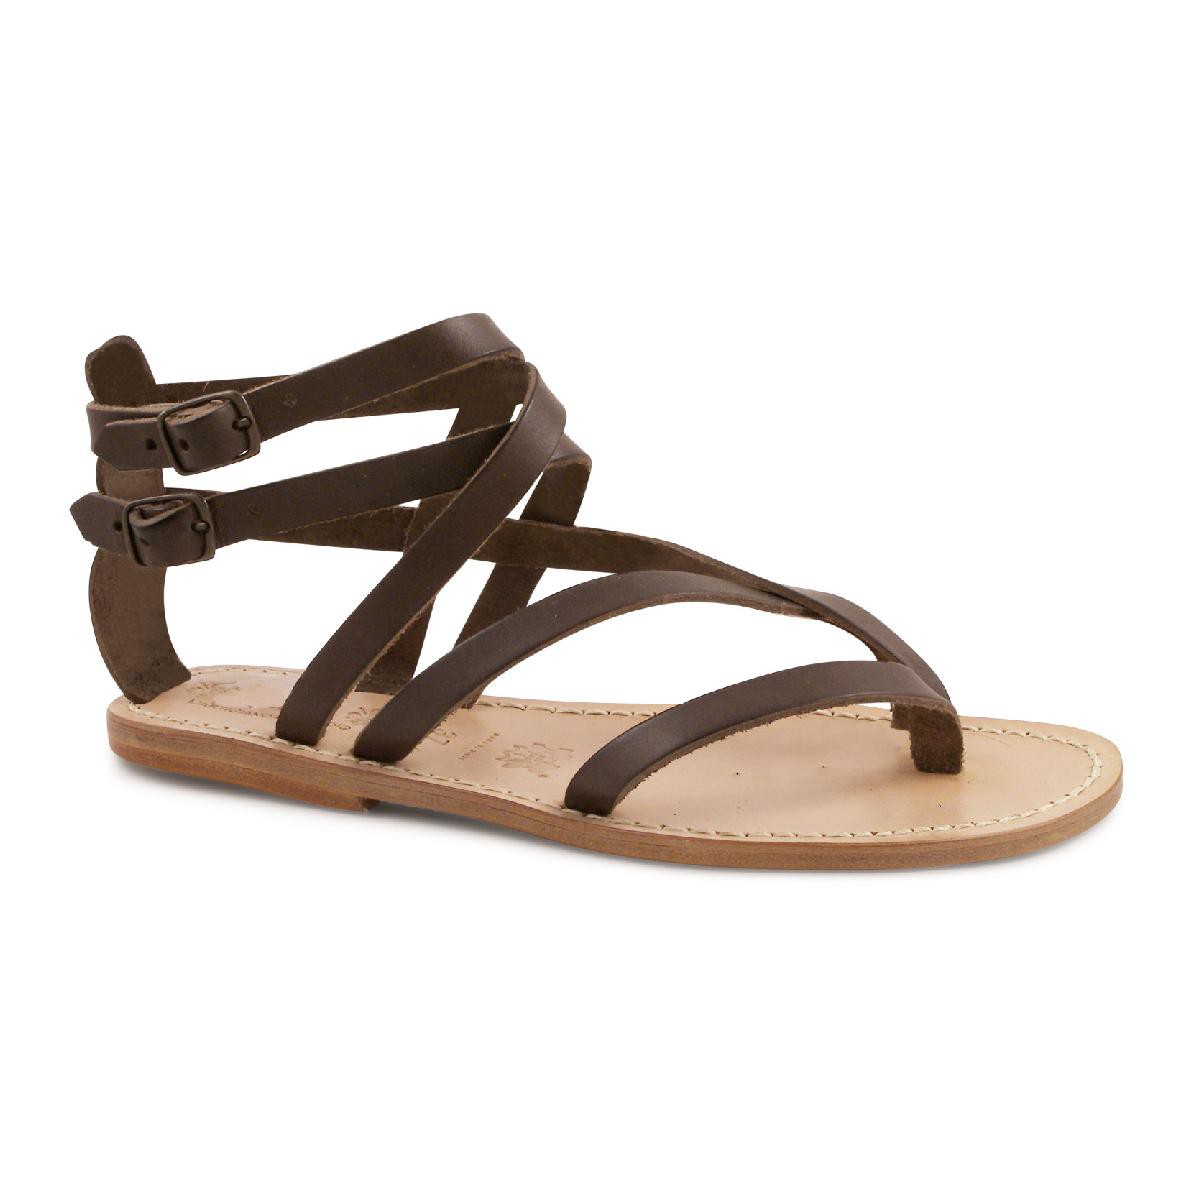 New Softwalk Brown Leather Sandals Women39s 85 M Shoes  EBay